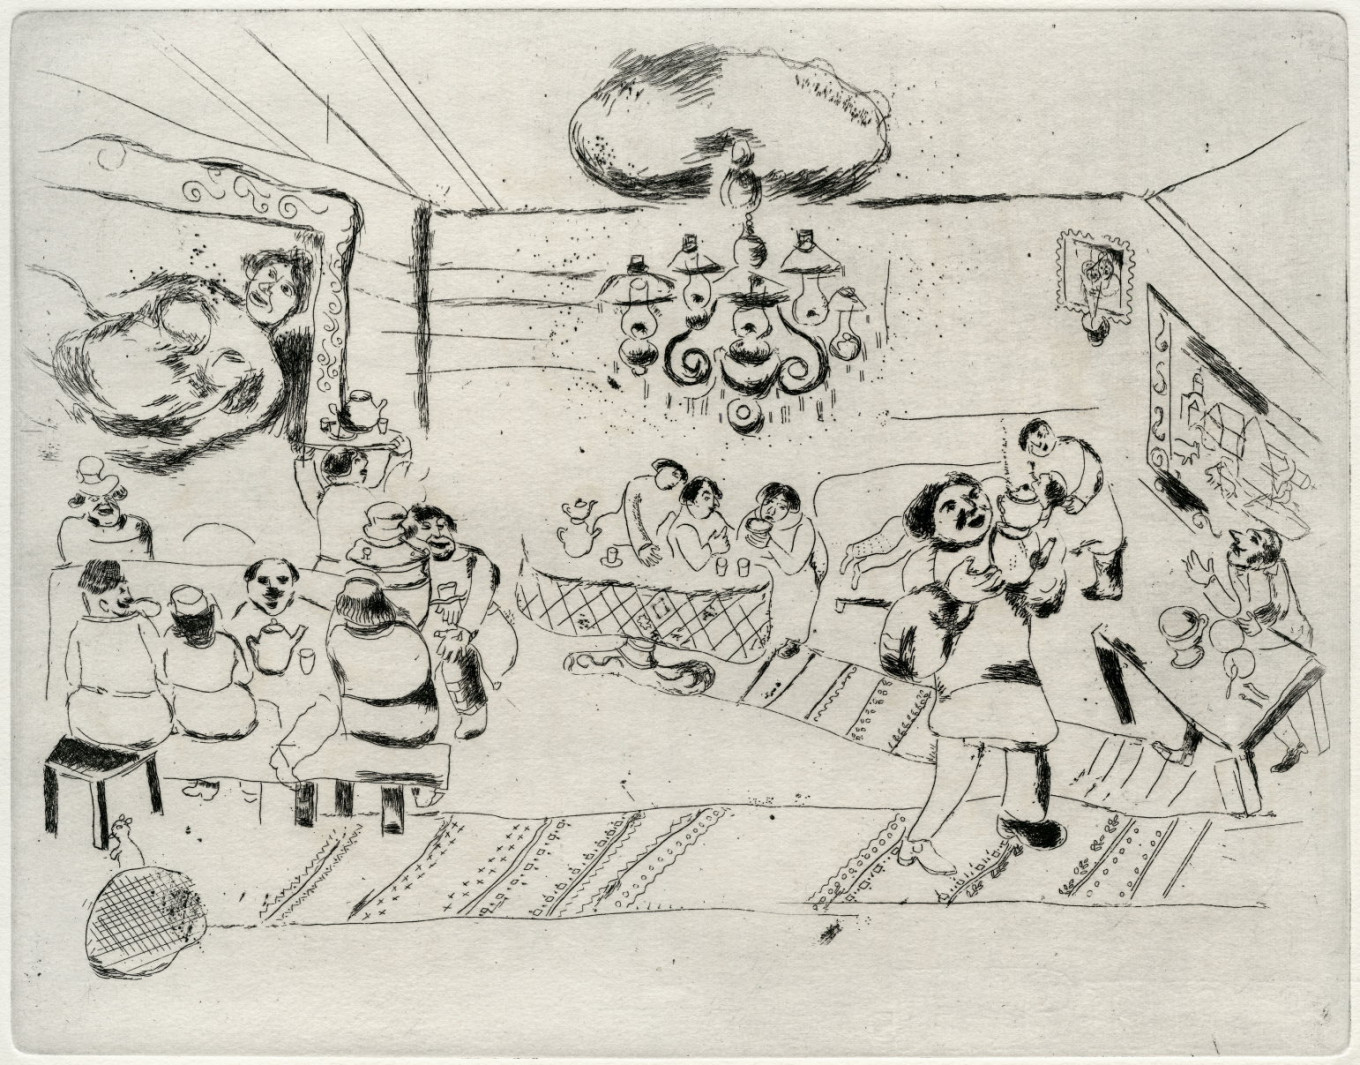 """Inn,"" Marc Chagall, 1948, lithograph				 				From the collection of B. Fridman"